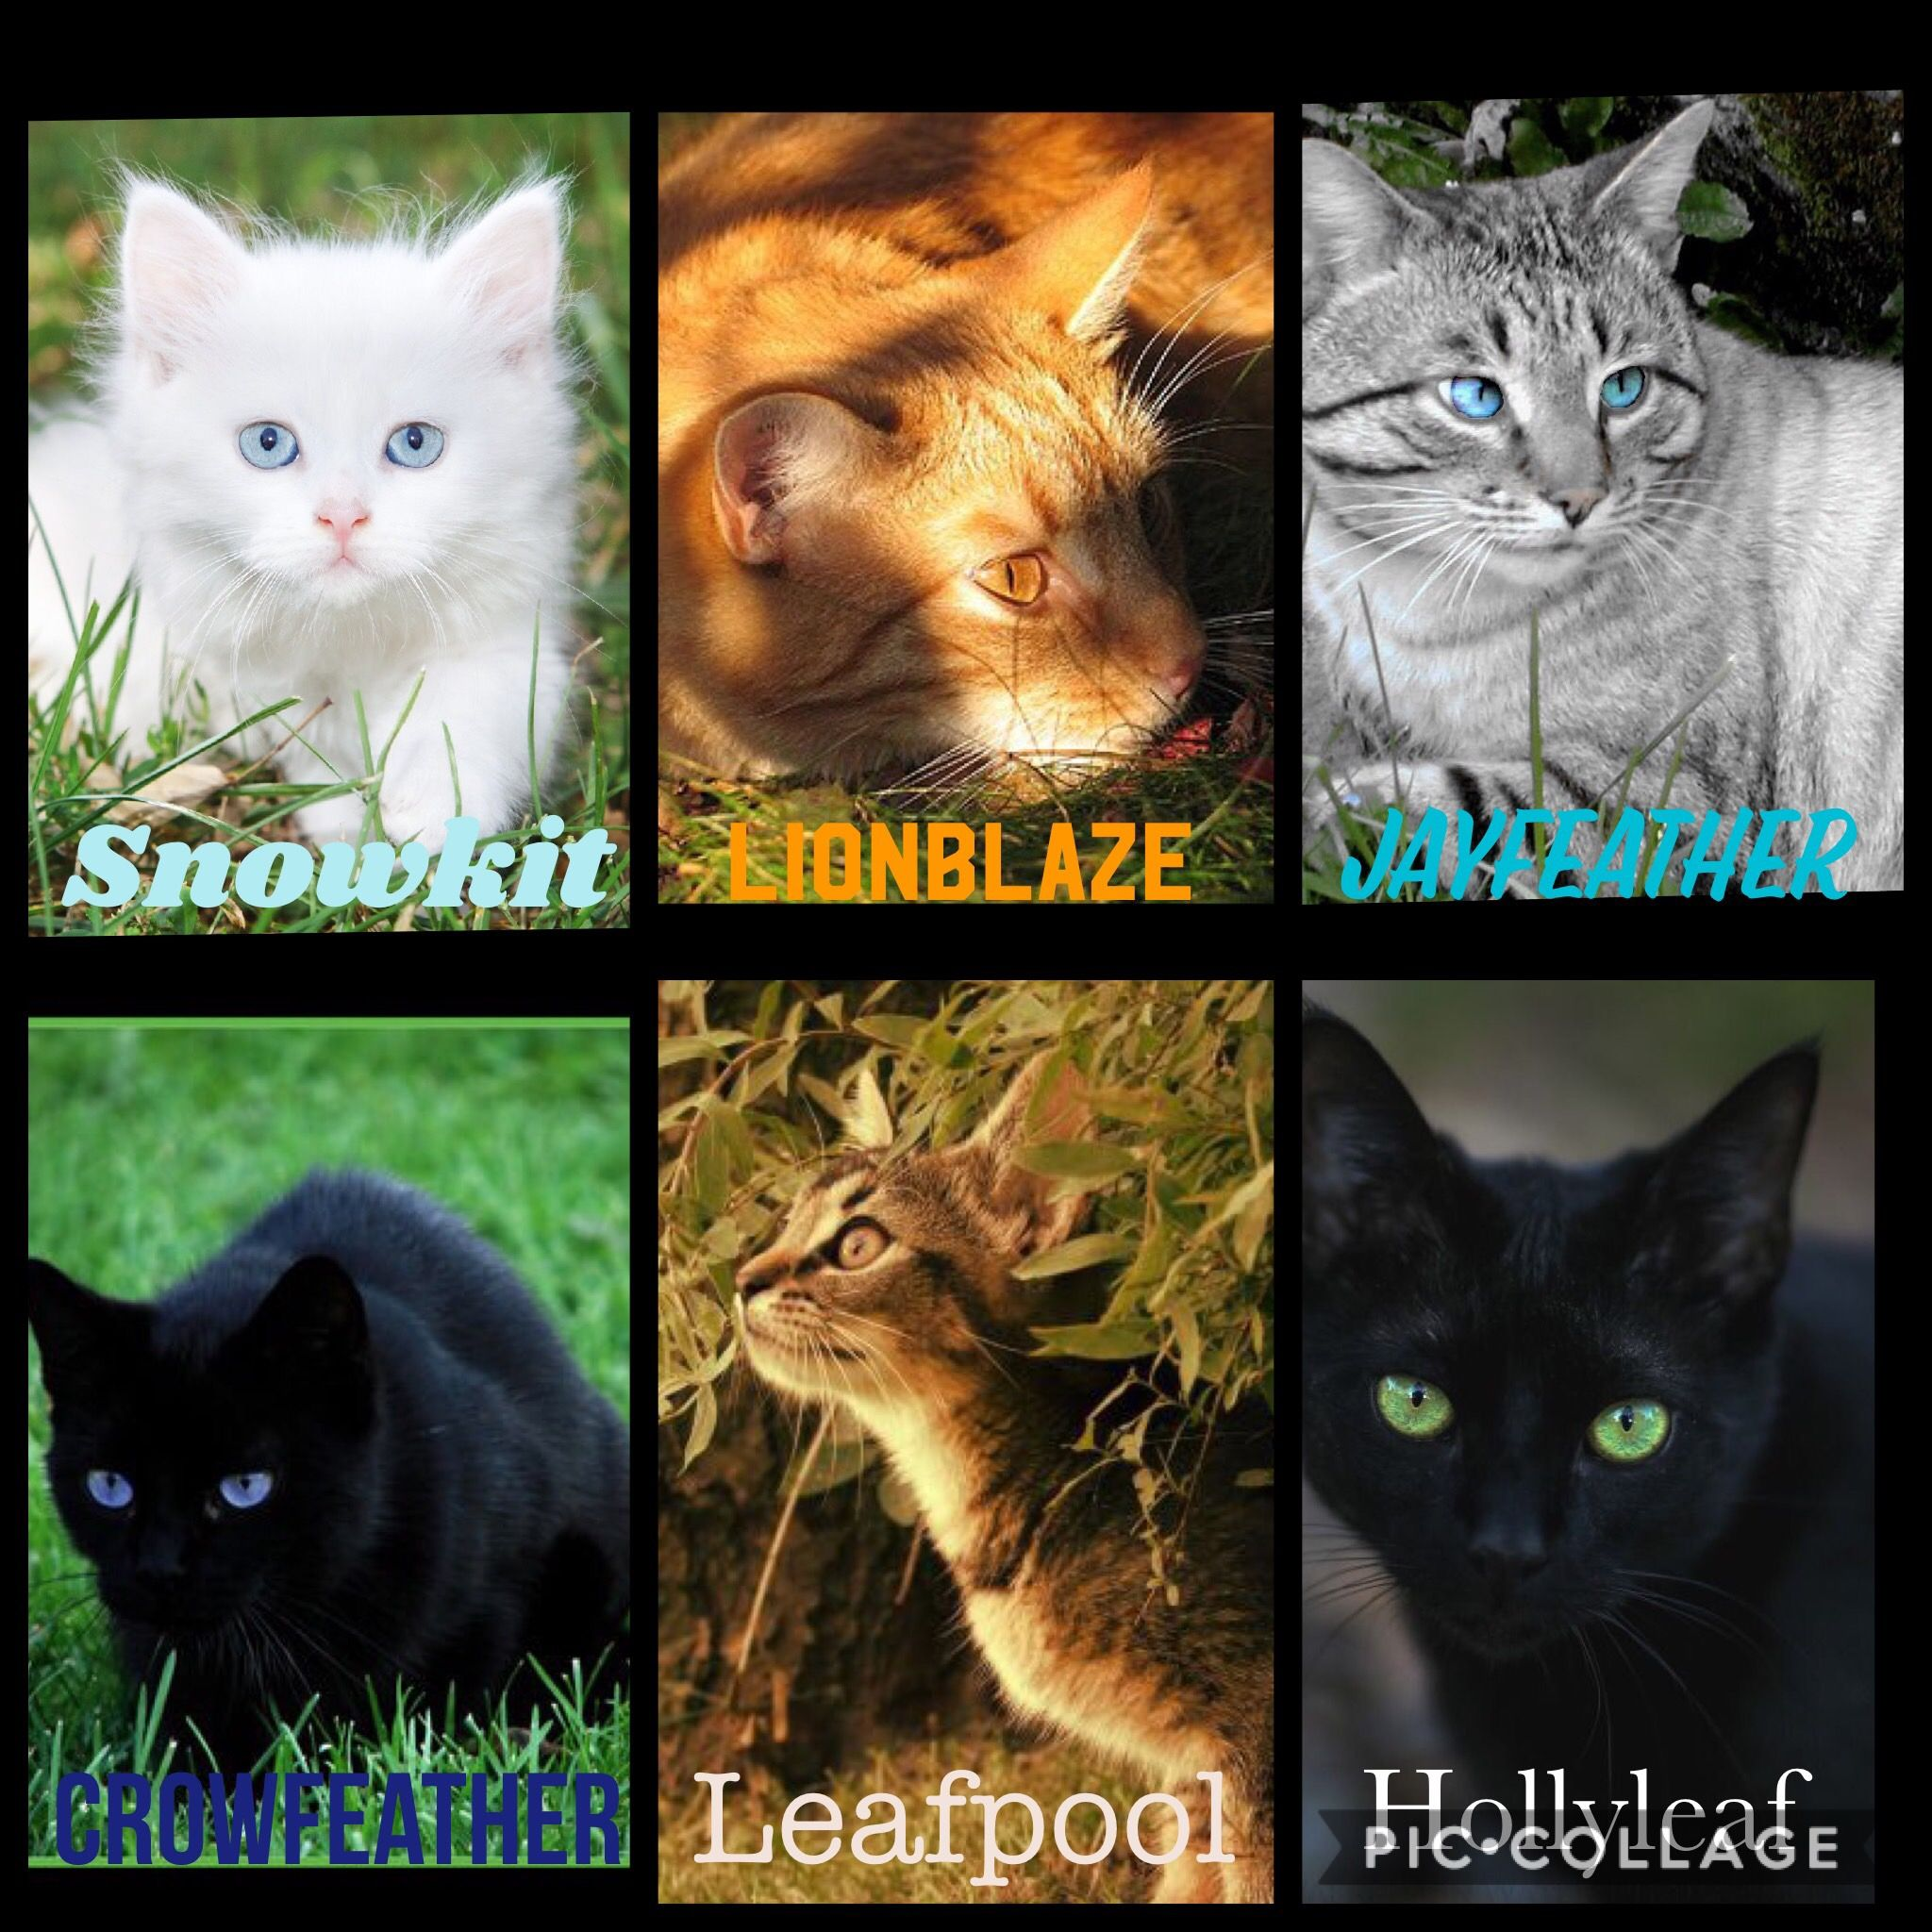 Warriors Dawn Of The Clans Characters: For Entertainment- Warrior Cat Movie